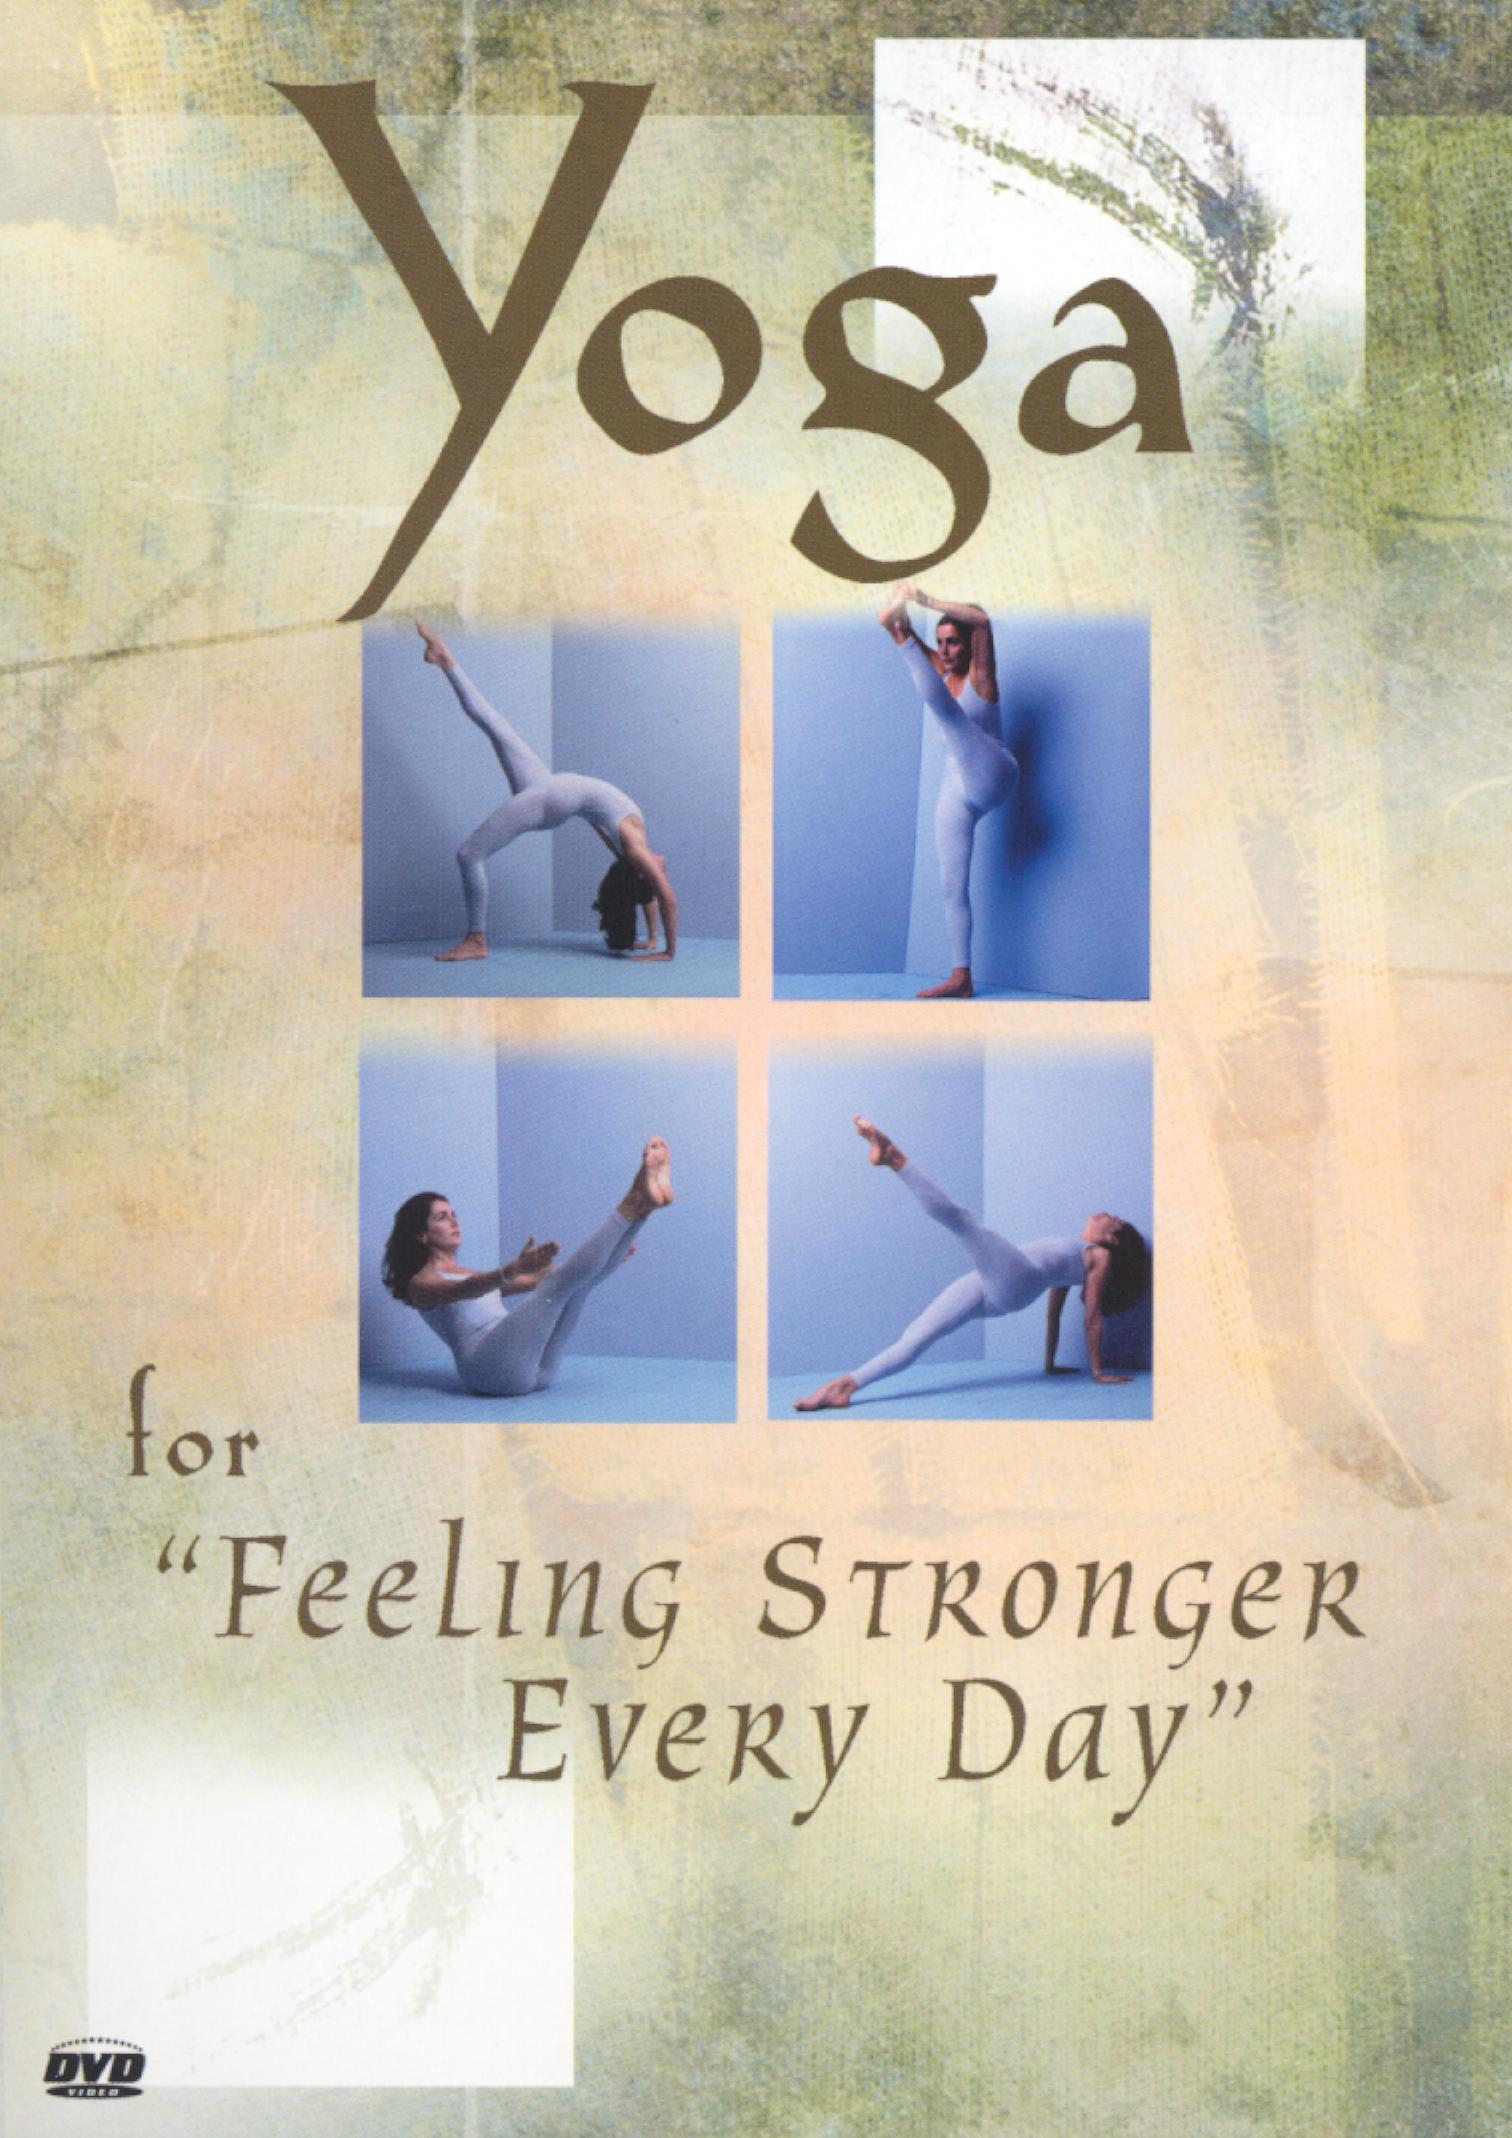 Yoga for Feeling Stronger Every Day